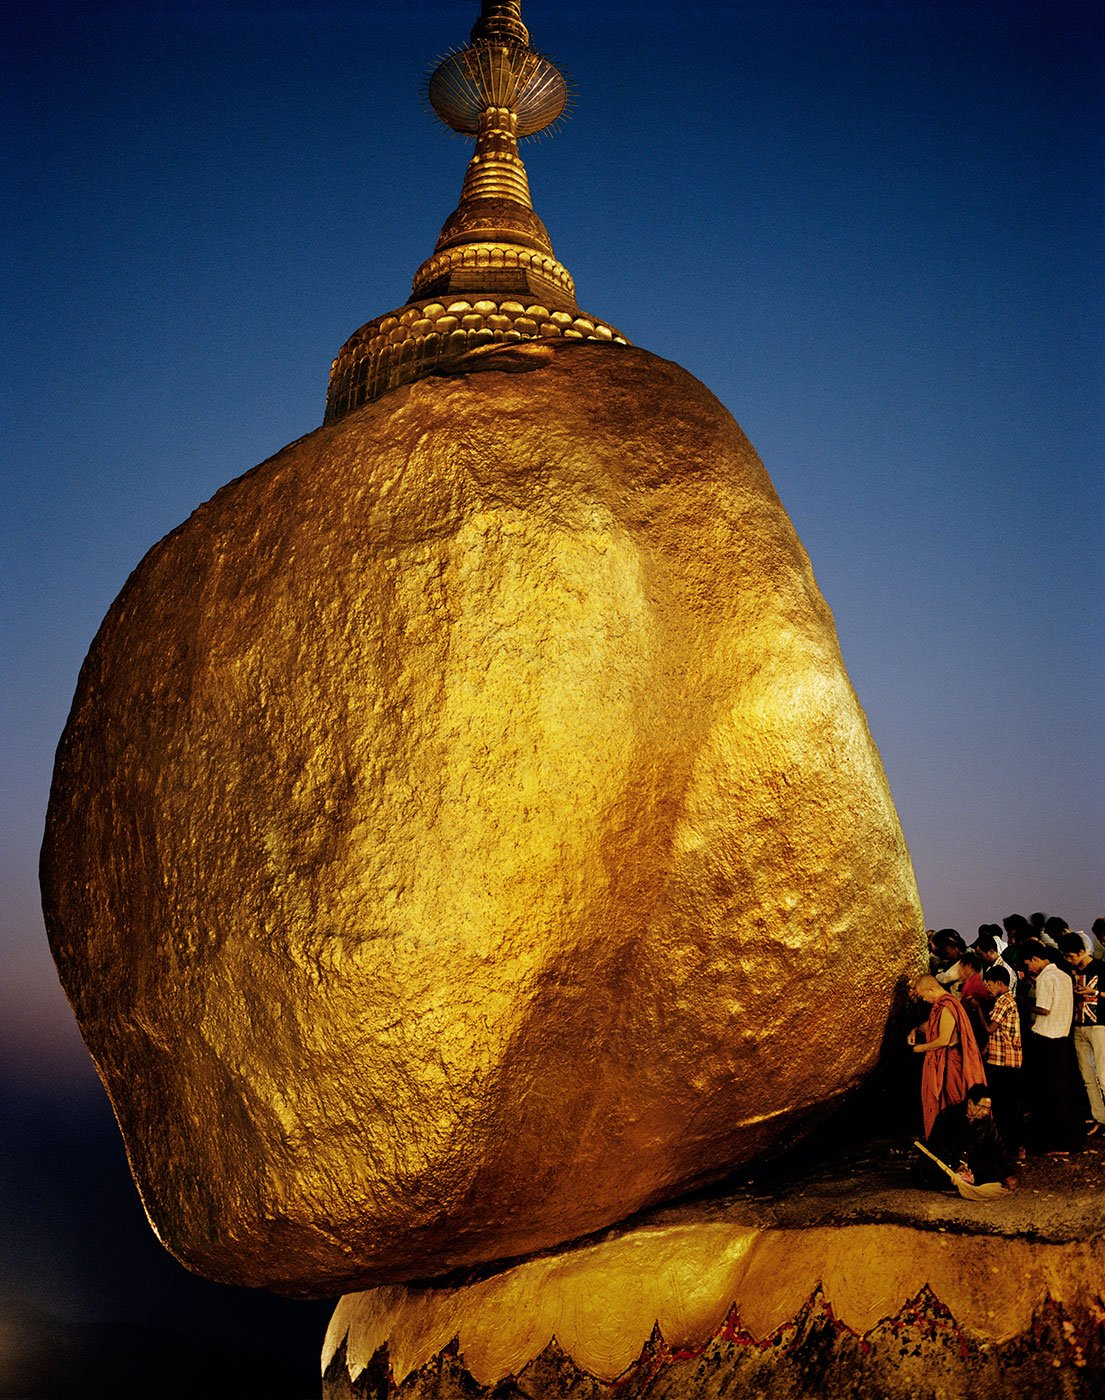 The Golden Rock, a Buddhist pilgrimage site northeast of Yangon. color photography in Myanmar by Frédéric Lagrange